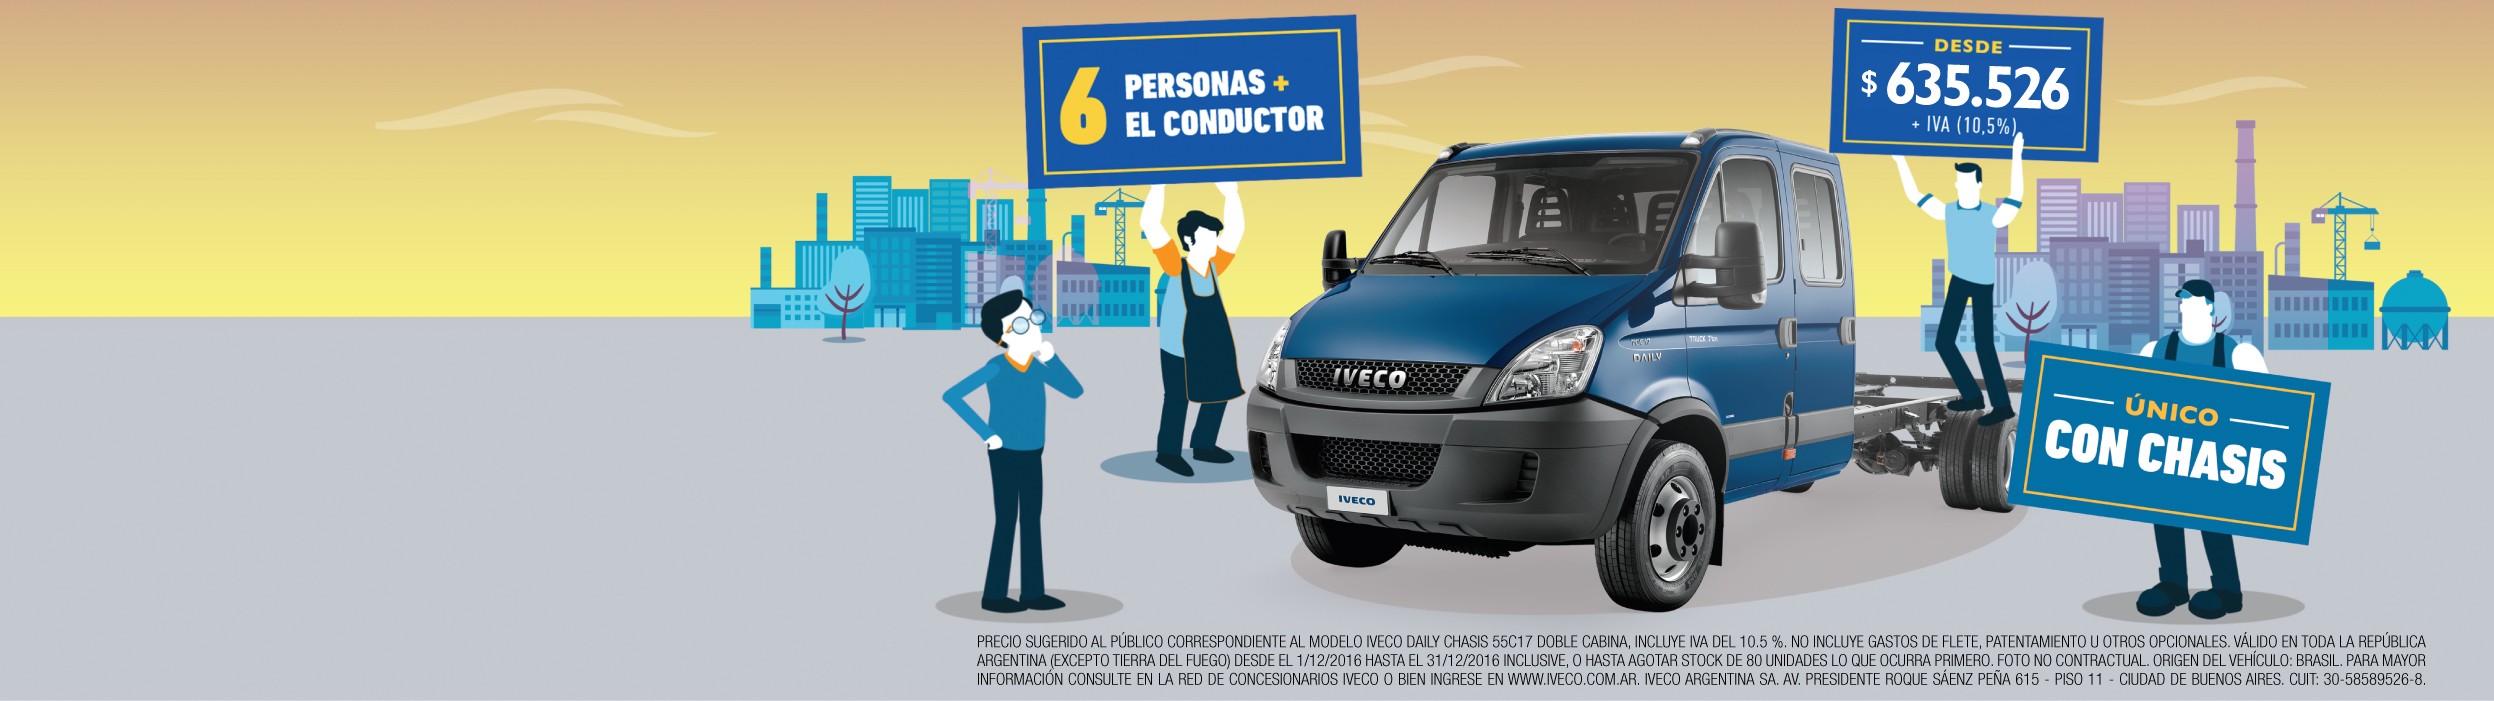 Iveco [Daily Chasis Doble Cabina]_Banner Iveco Web